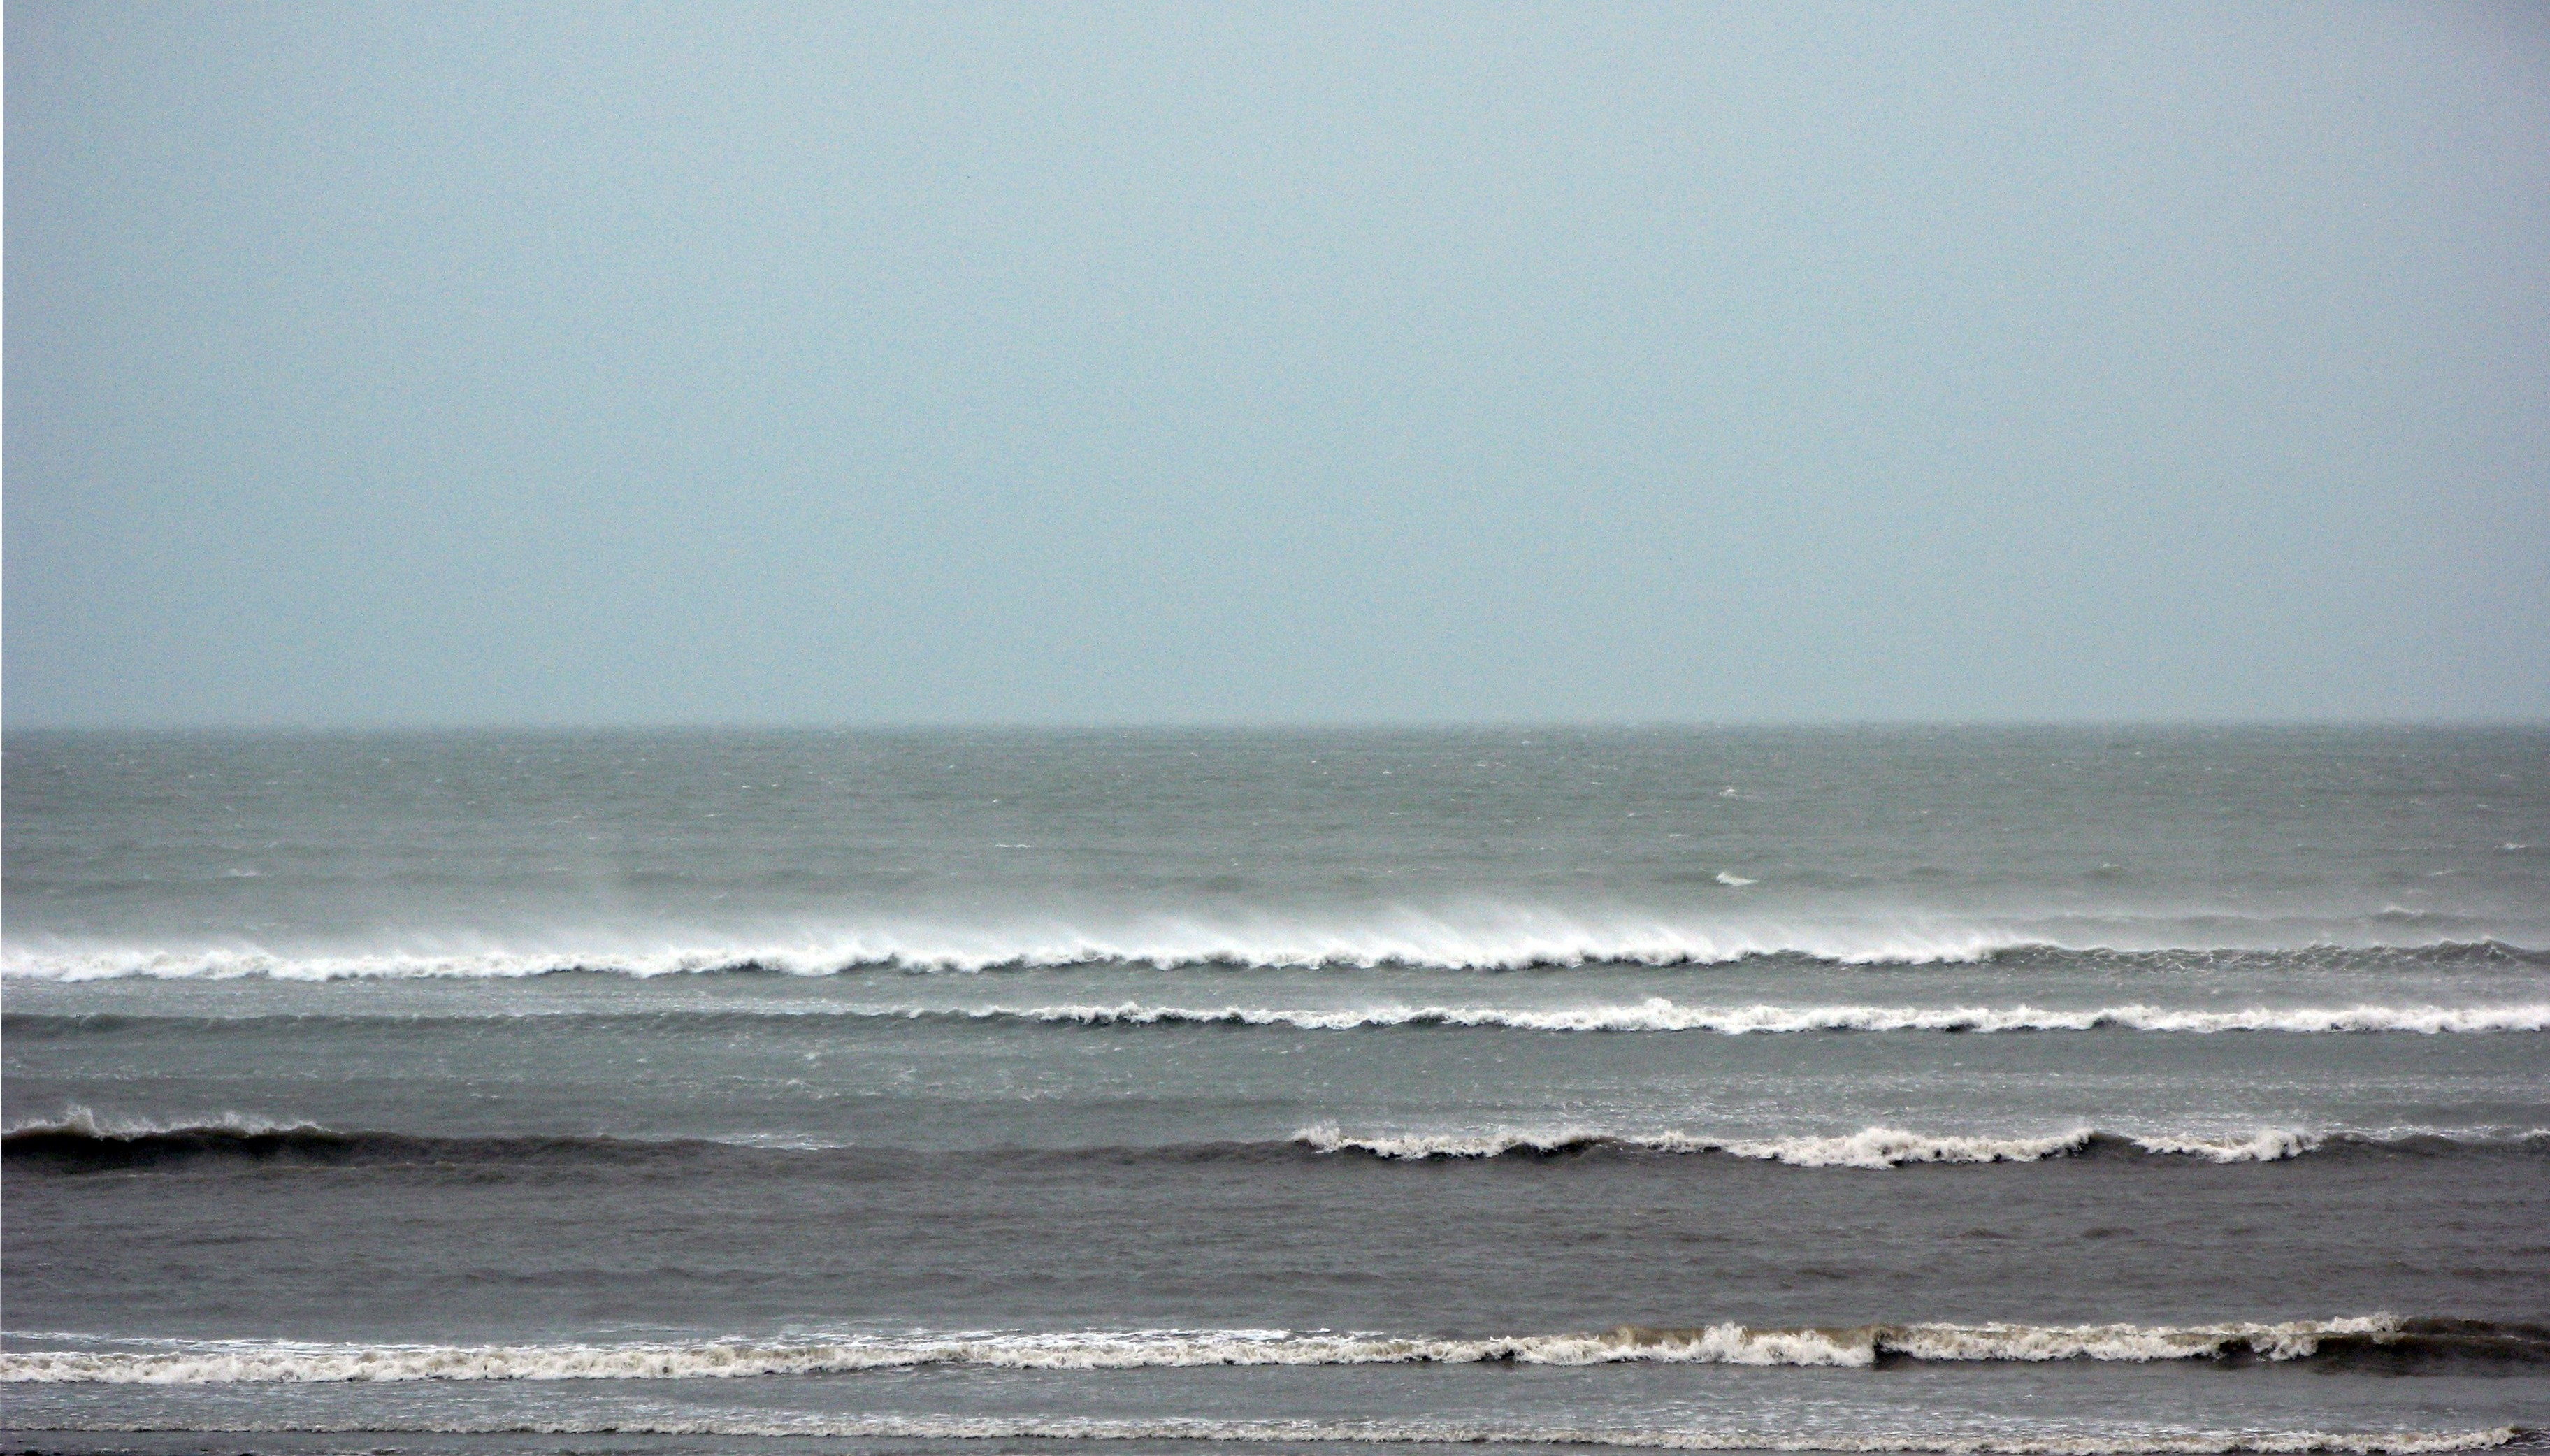 a view out to sea during a cyclone, strong wind blows the tops of breaking waves